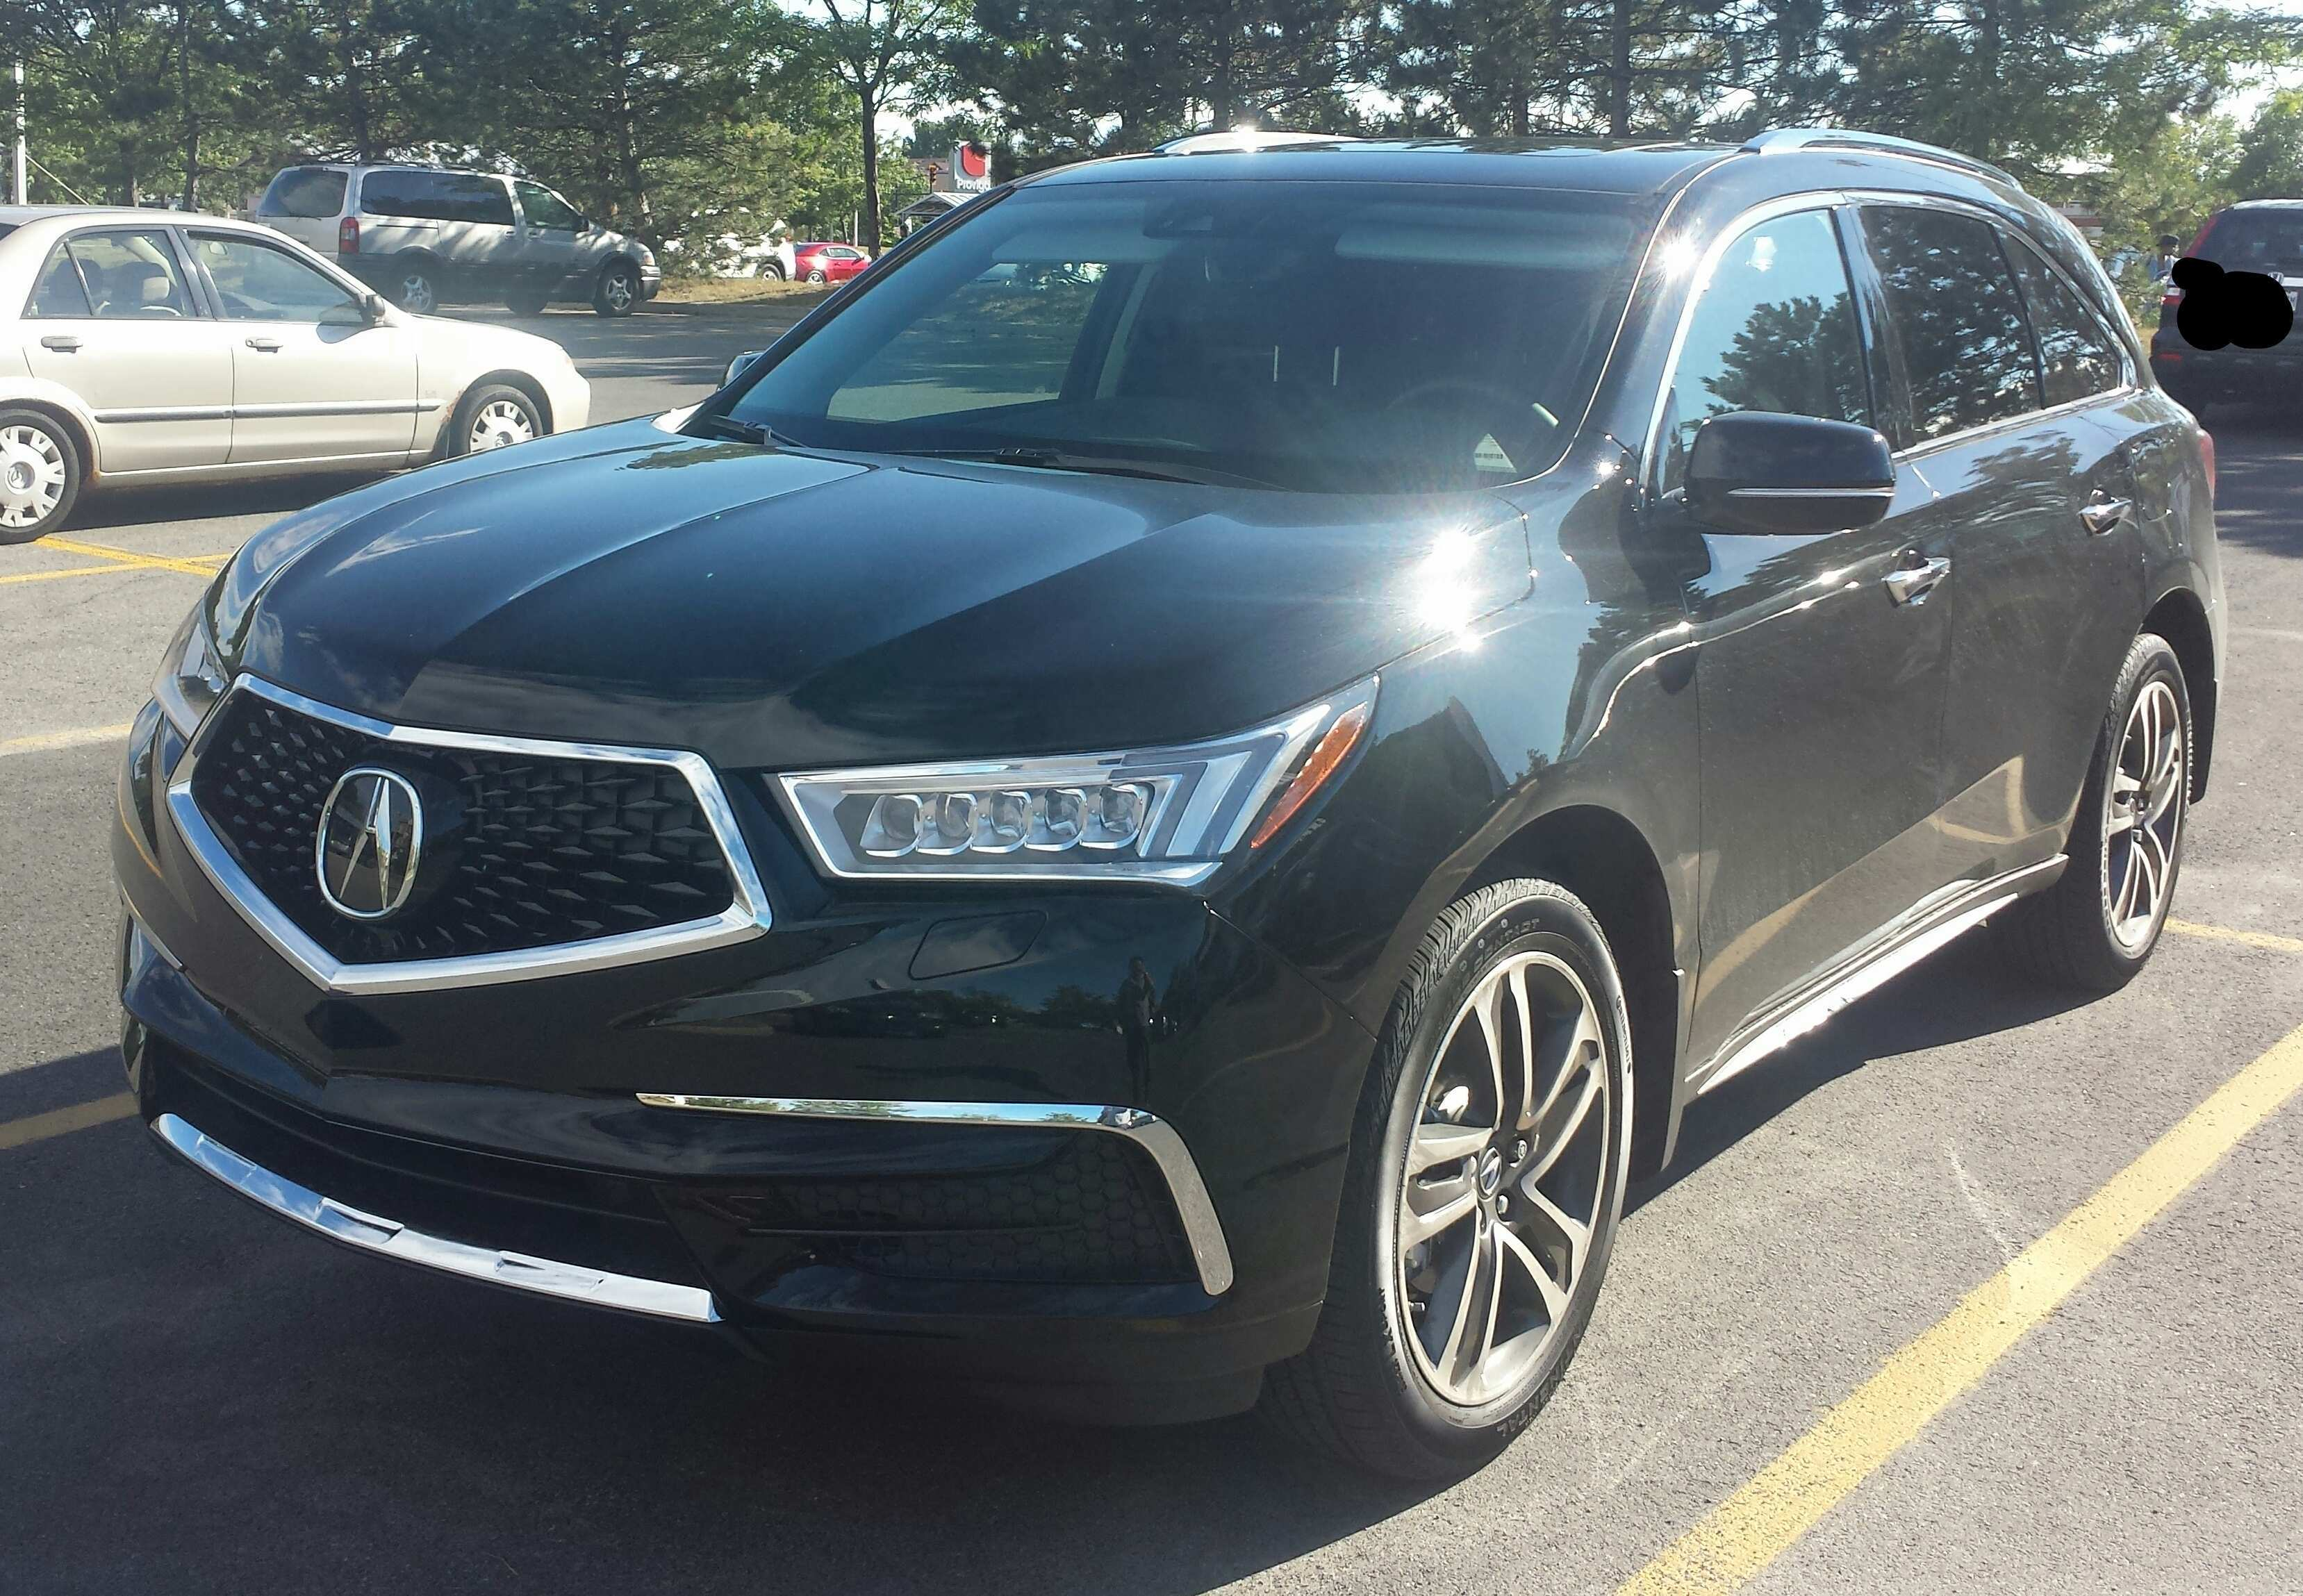 31 Gallery of Best Acura Mdx 2019 Release Date Price And Review Reviews with Best Acura Mdx 2019 Release Date Price And Review